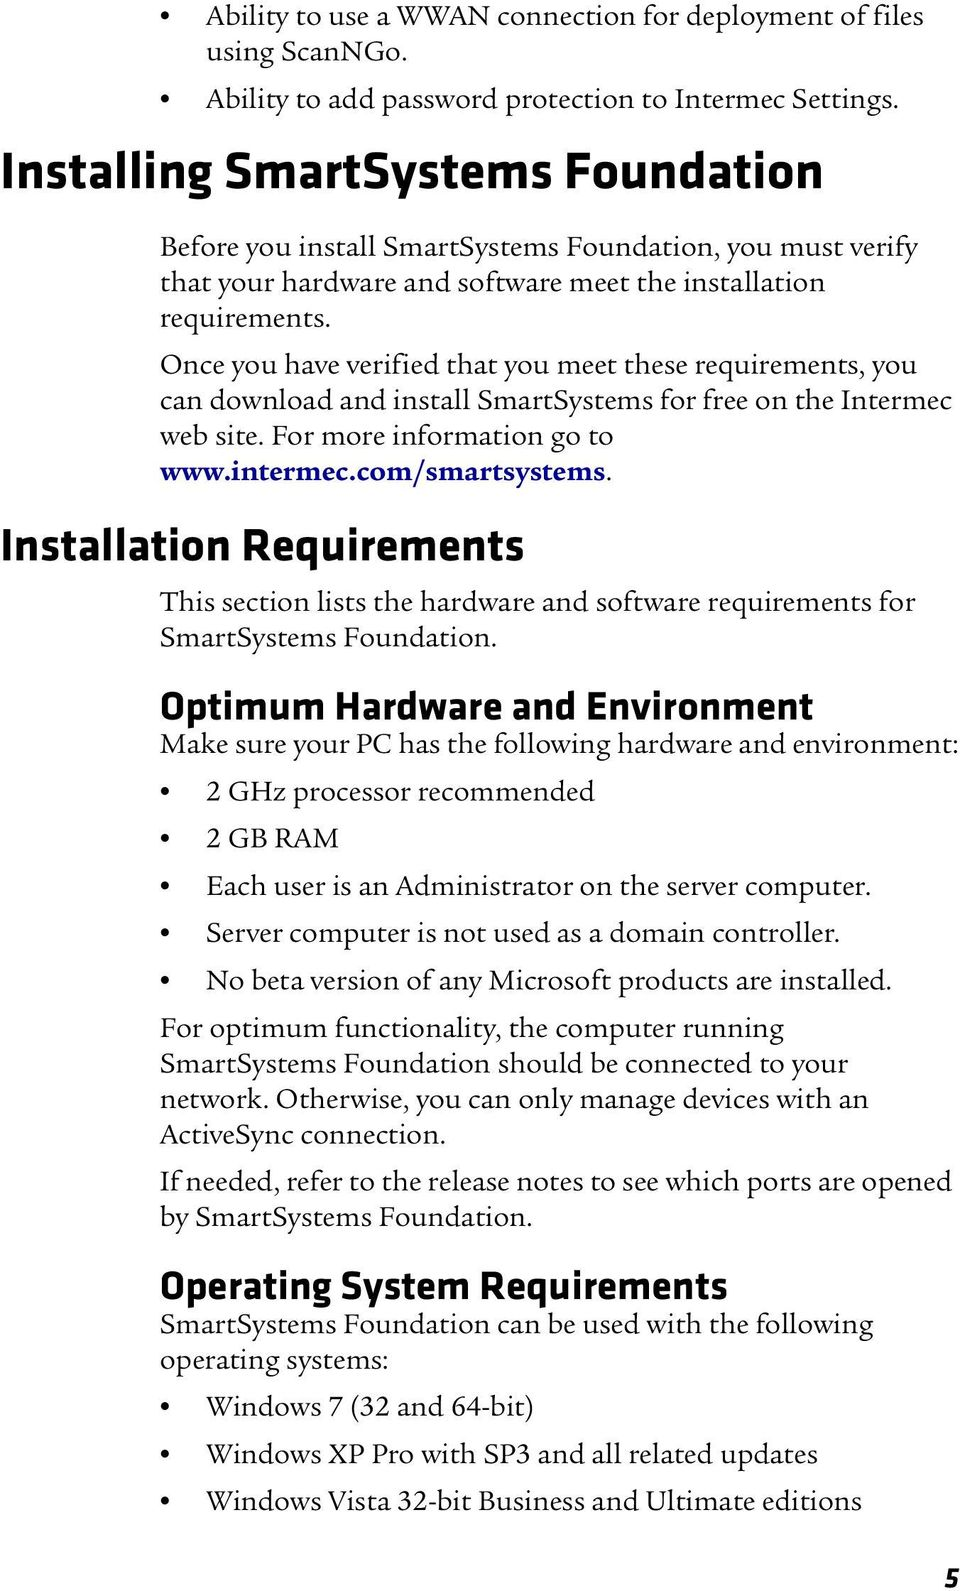 Once you have verified that you meet these requirements, you can download and install SmartSystems for free on the Intermec web site. For more information go to www.intermec.com/smartsystems.